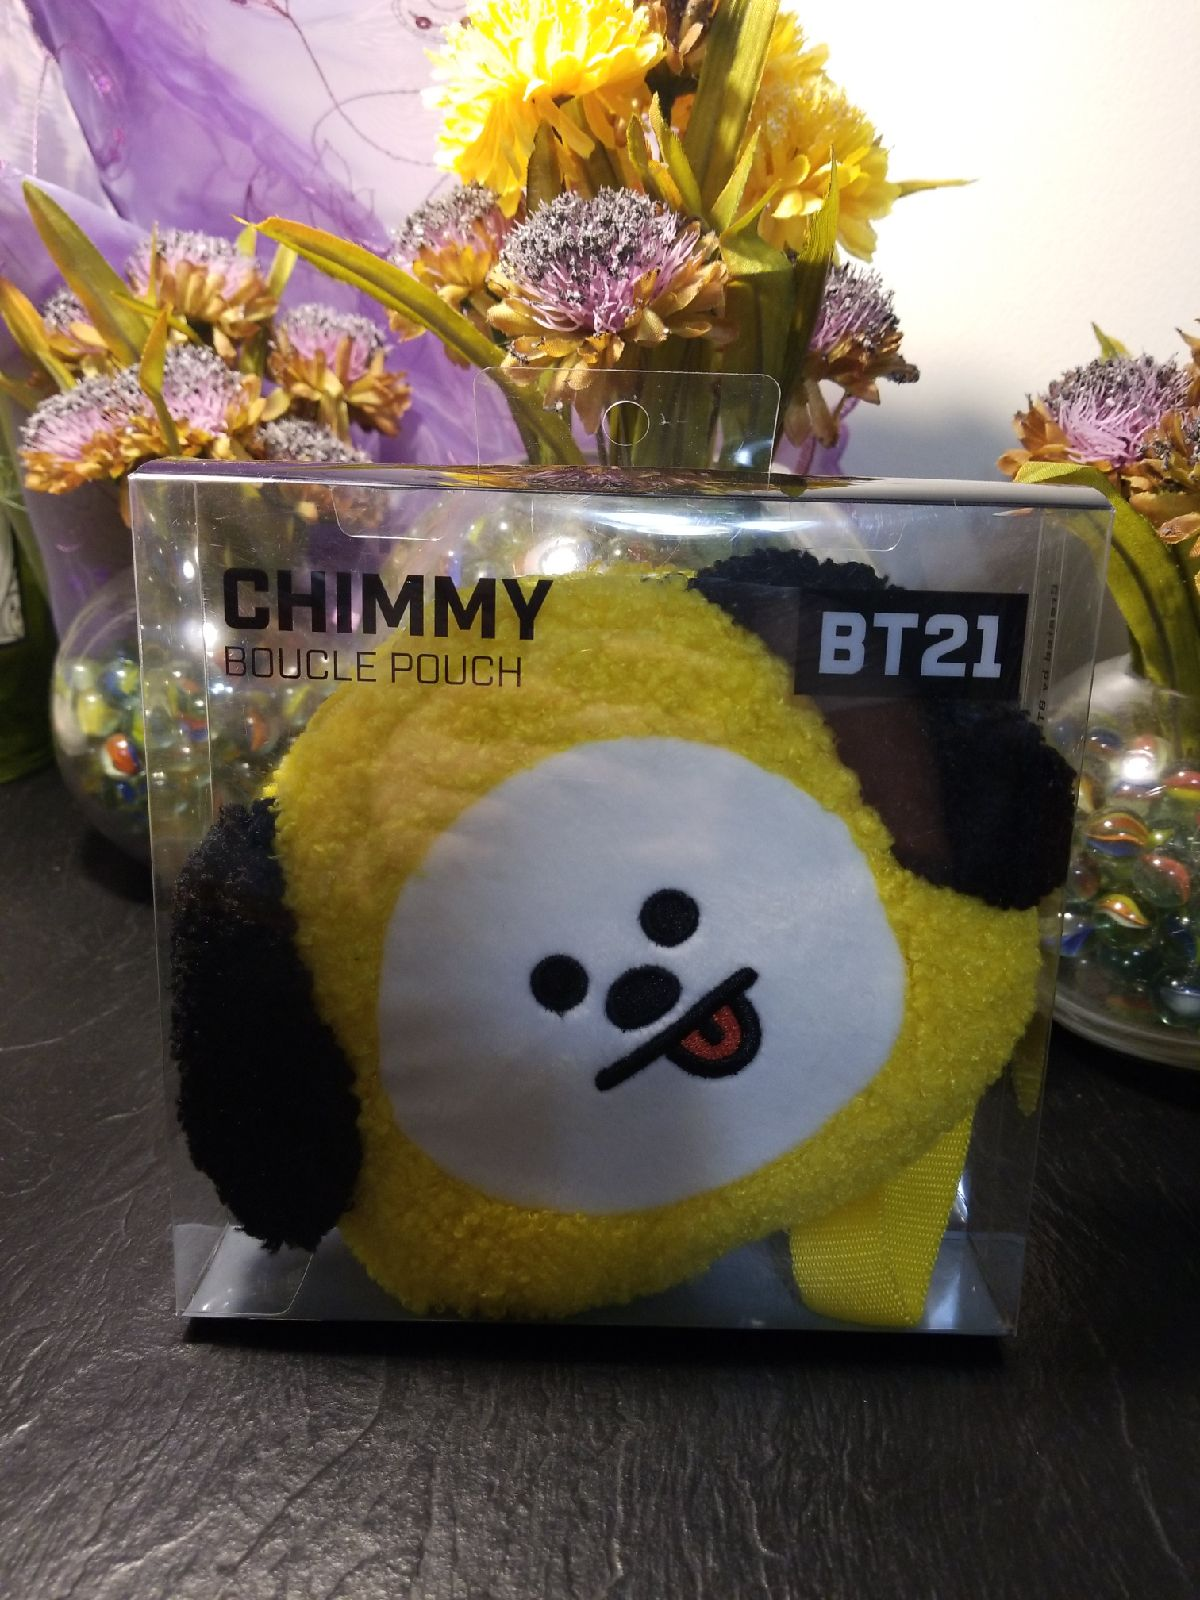 Chimmy boucle pouch